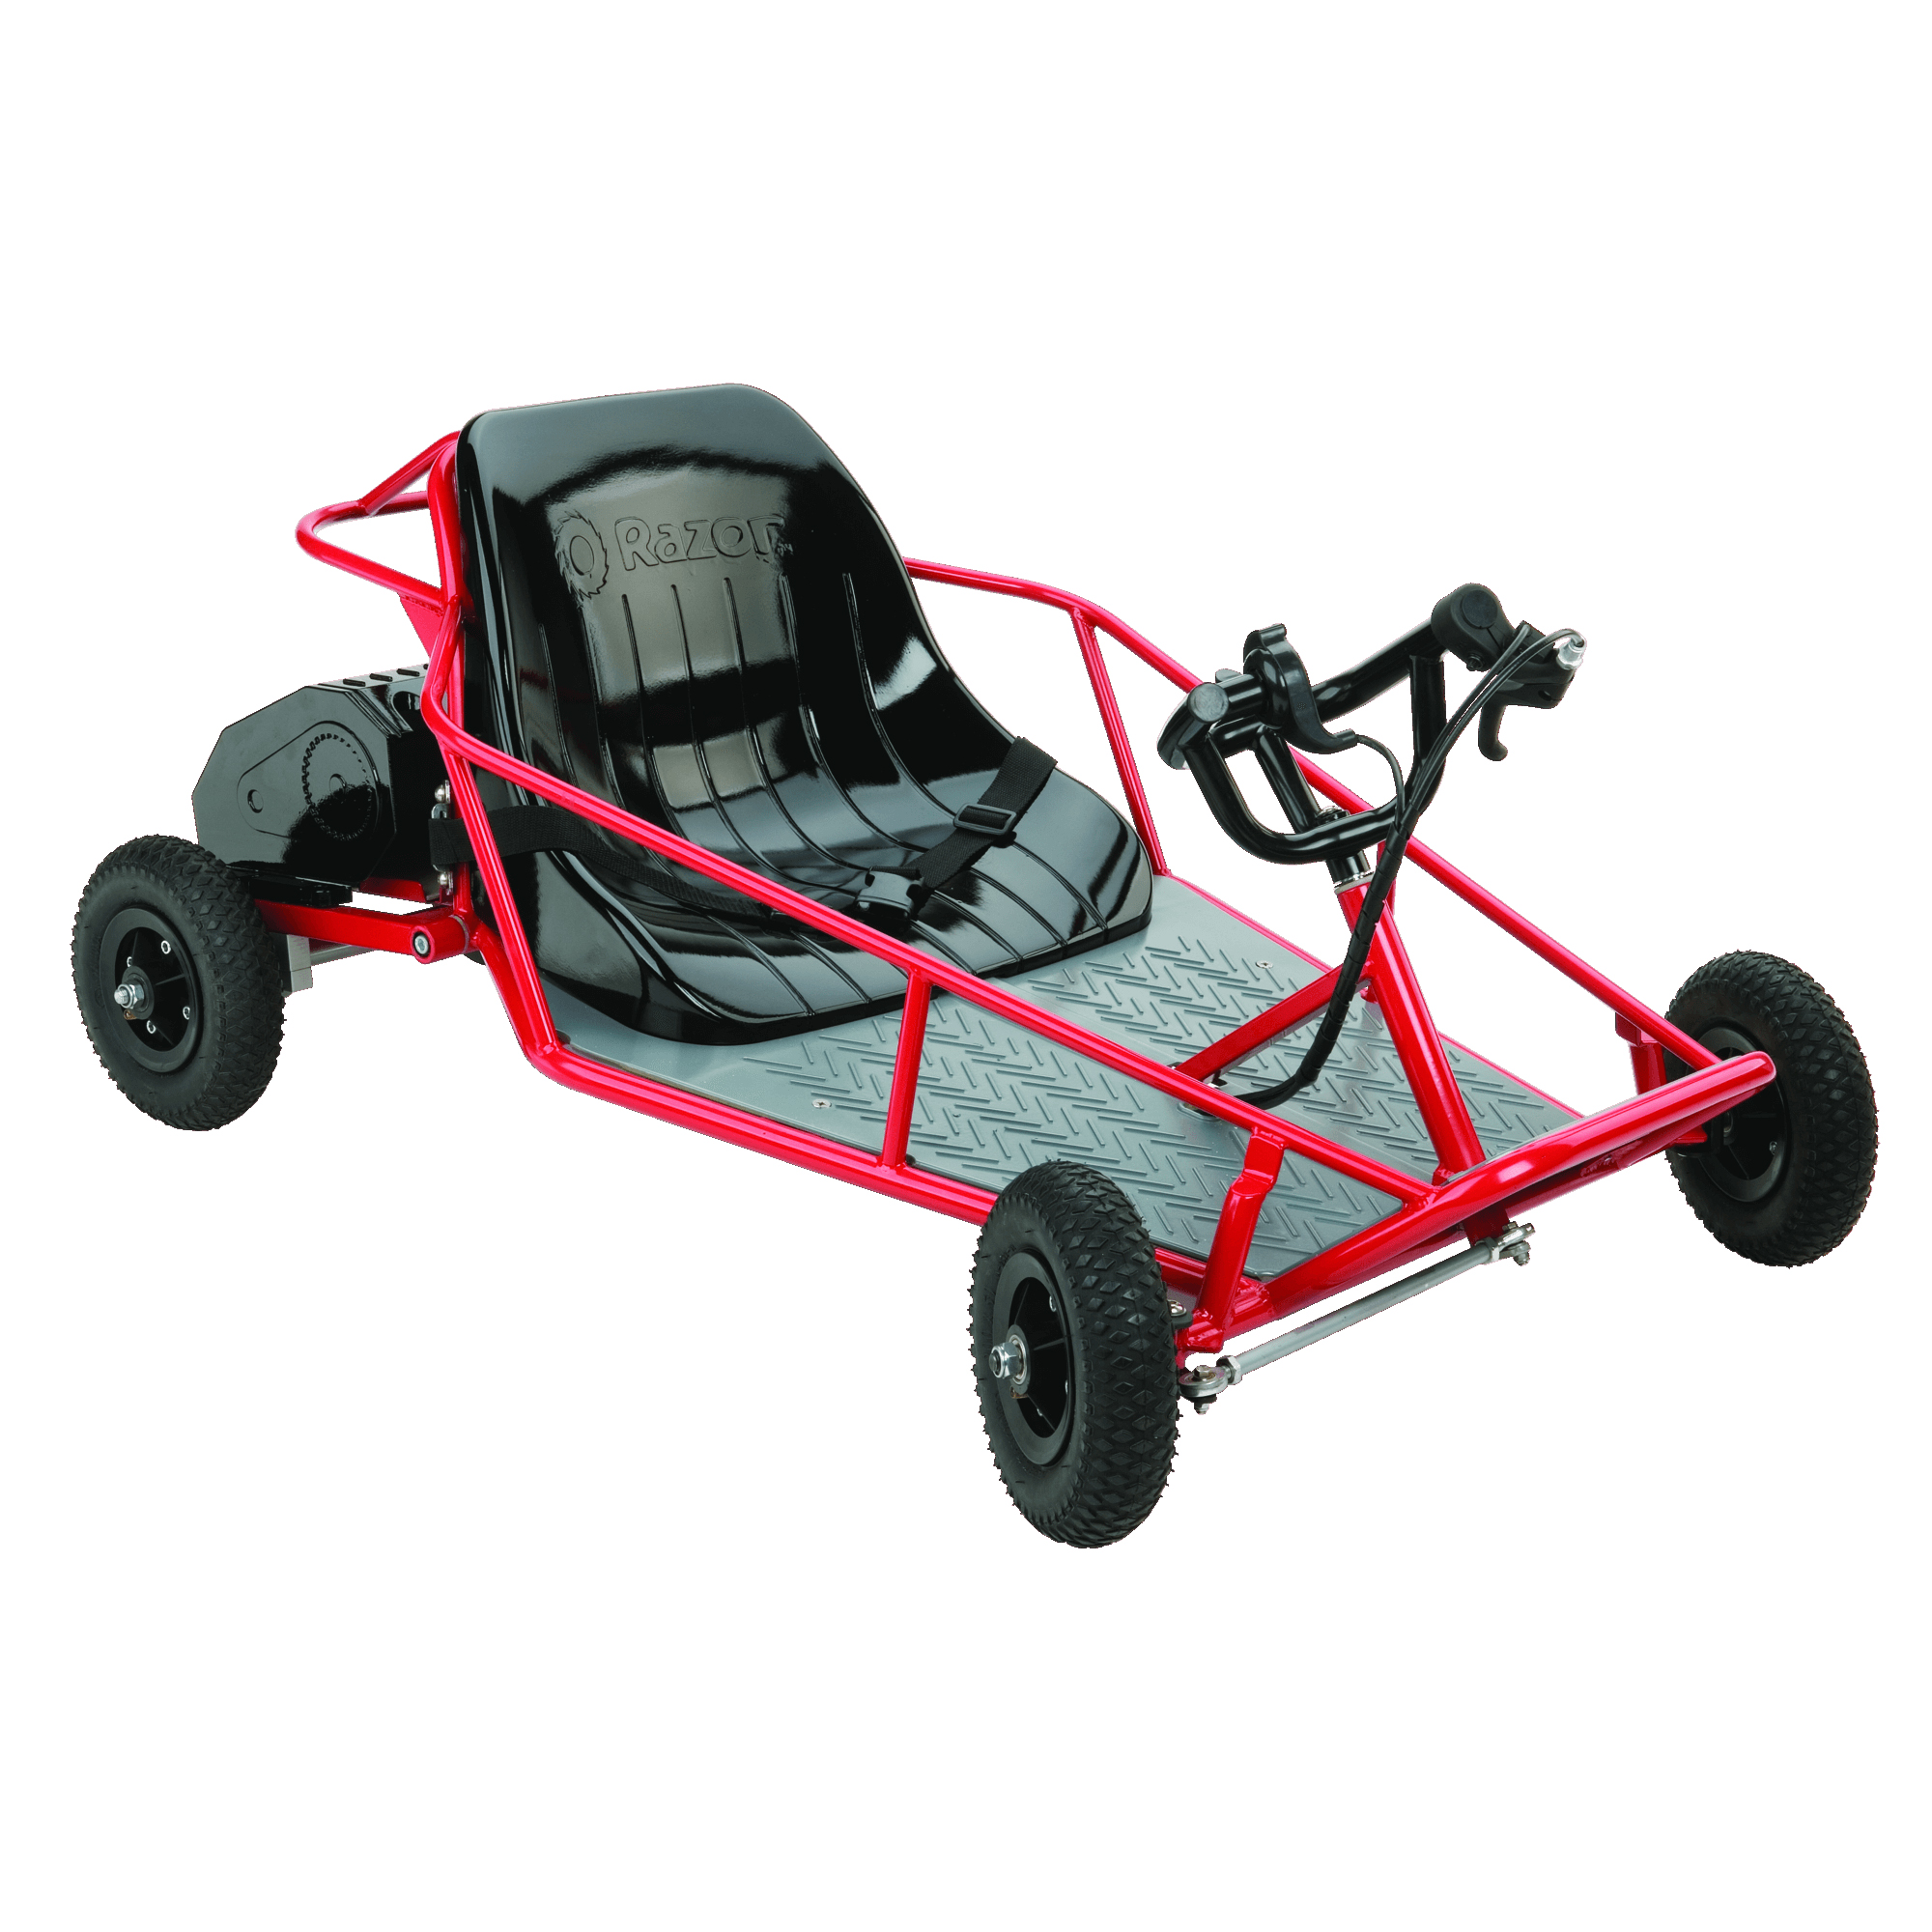 Razor Dune Buggy Parts Go Kart All Brands Avigo Electric Scooter Wiring Diagram Accessories Monster